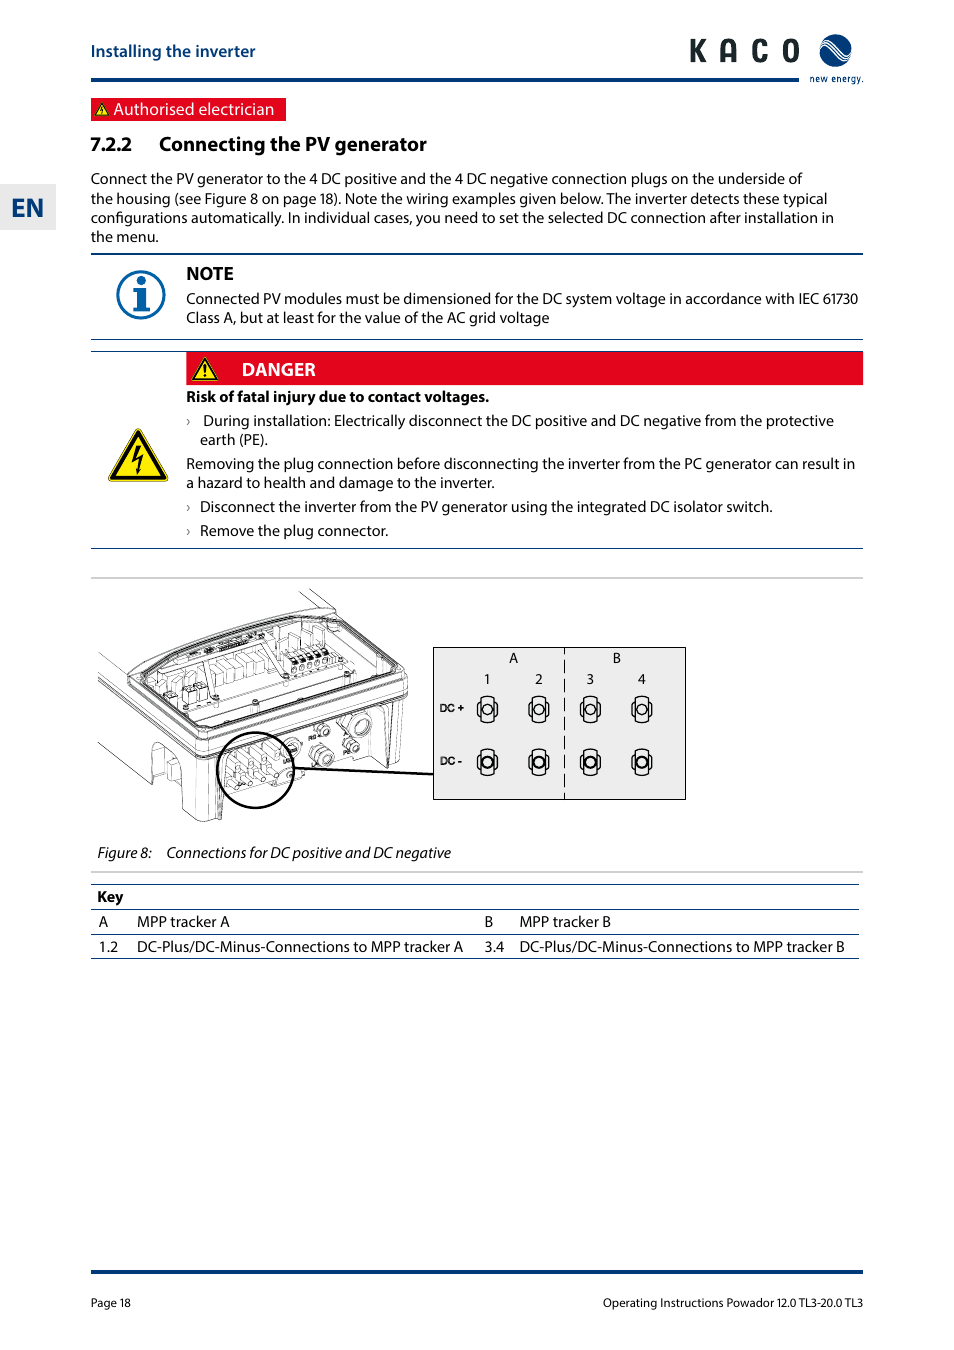 hight resolution of 2 connecting the pv generator kaco powador 10 0 20 0 tl3 user manual page 18 56